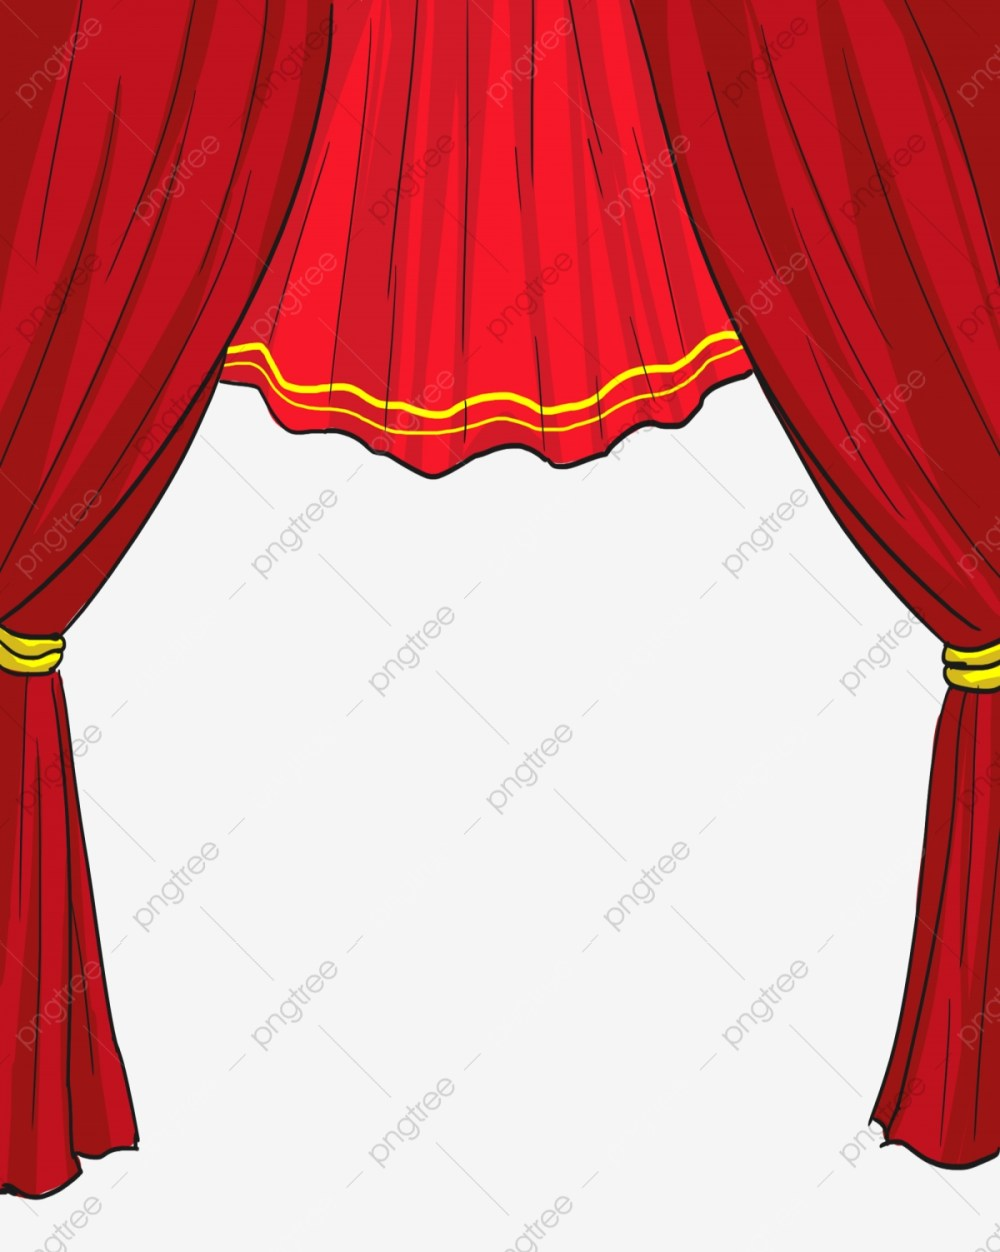 medium resolution of commercial use resource upgrade to premium plan and get license authorization upgradenow stage curtain stage clipart